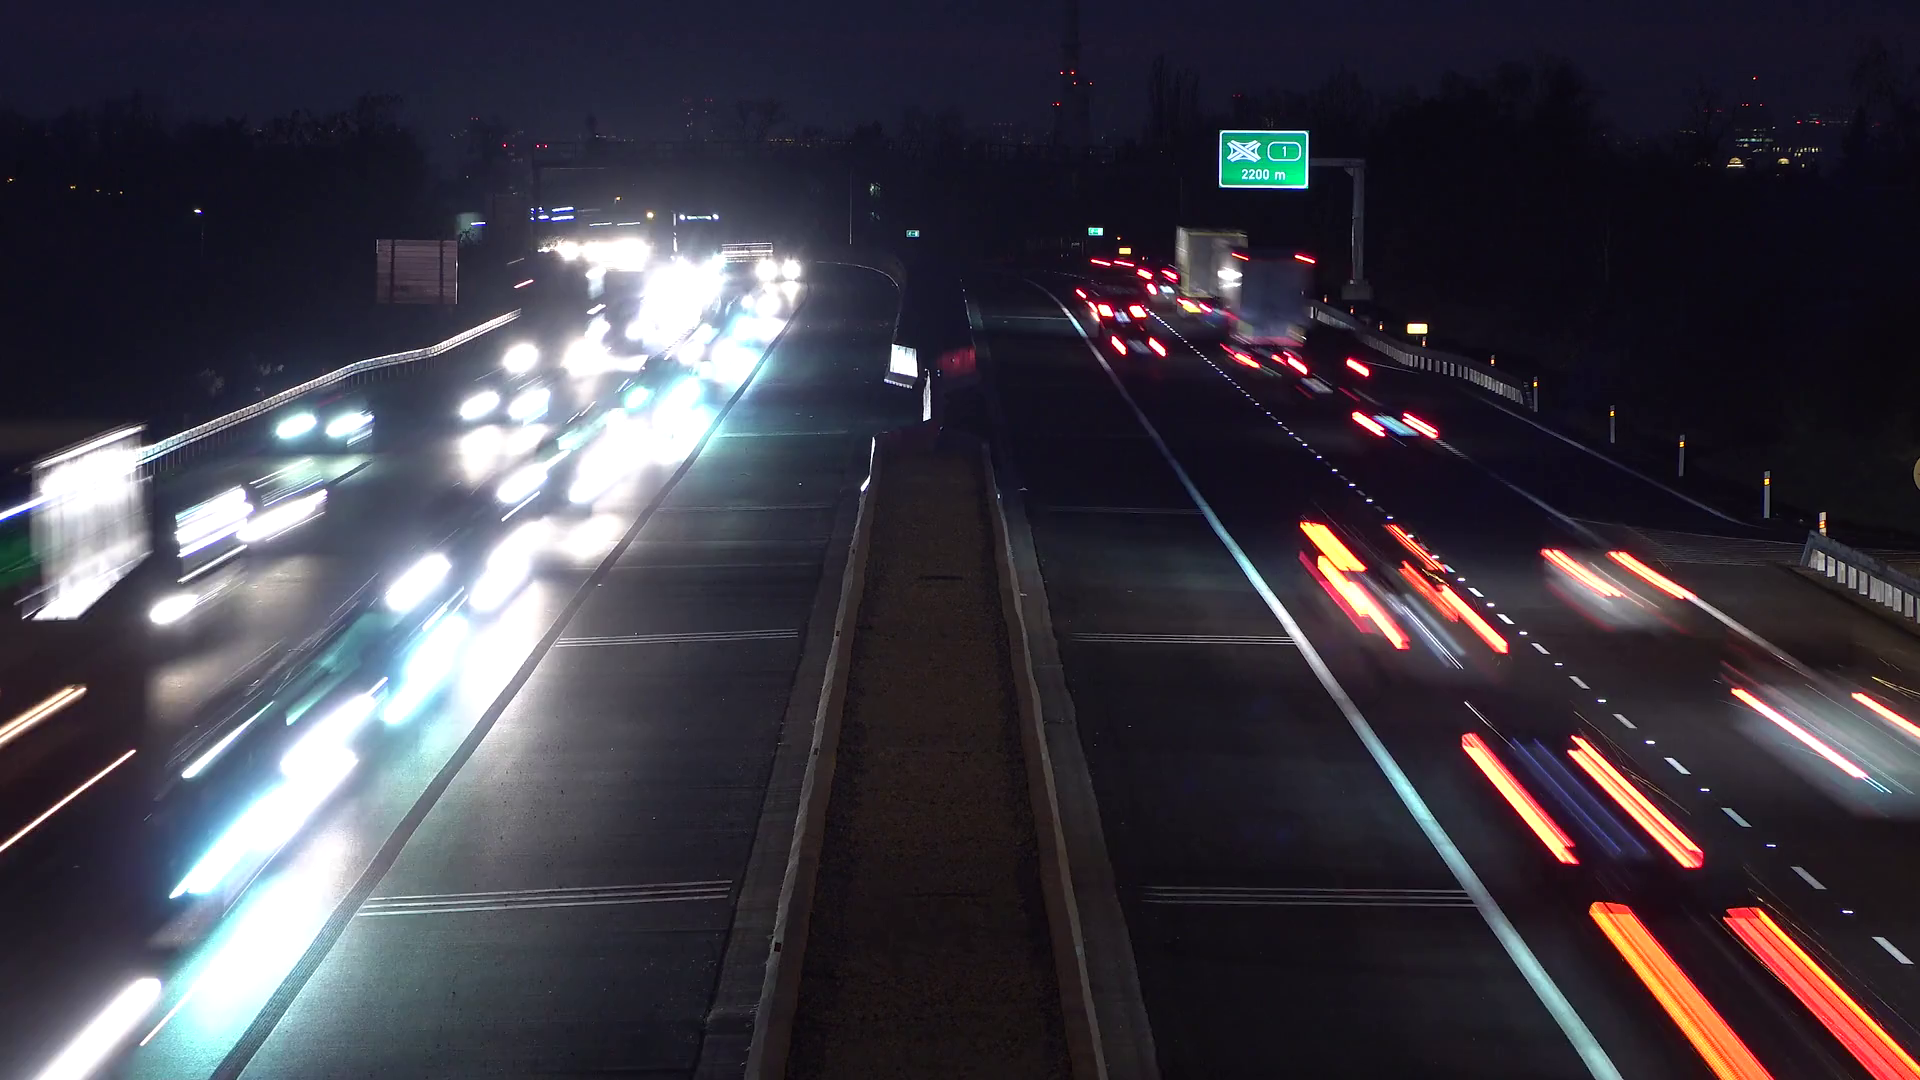 A Time Lapse Of A Busy Highway At Night With Lots Of Cars That Go By Stock Video Footage Storyblocks